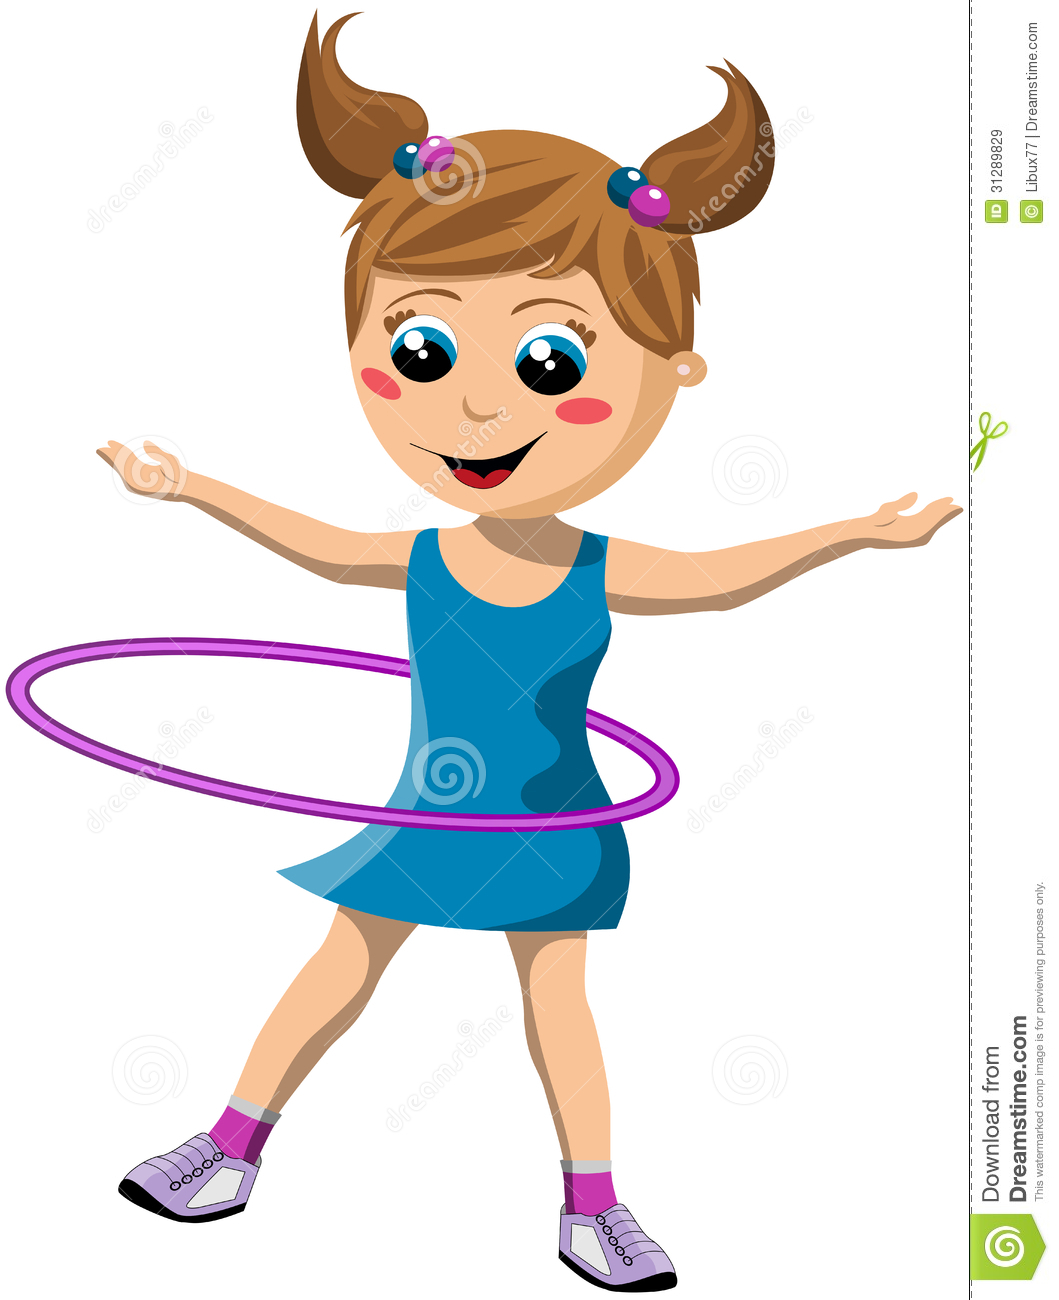 Happy Girl Twirling Hula Hoop-Happy Girl Twirling Hula Hoop-7